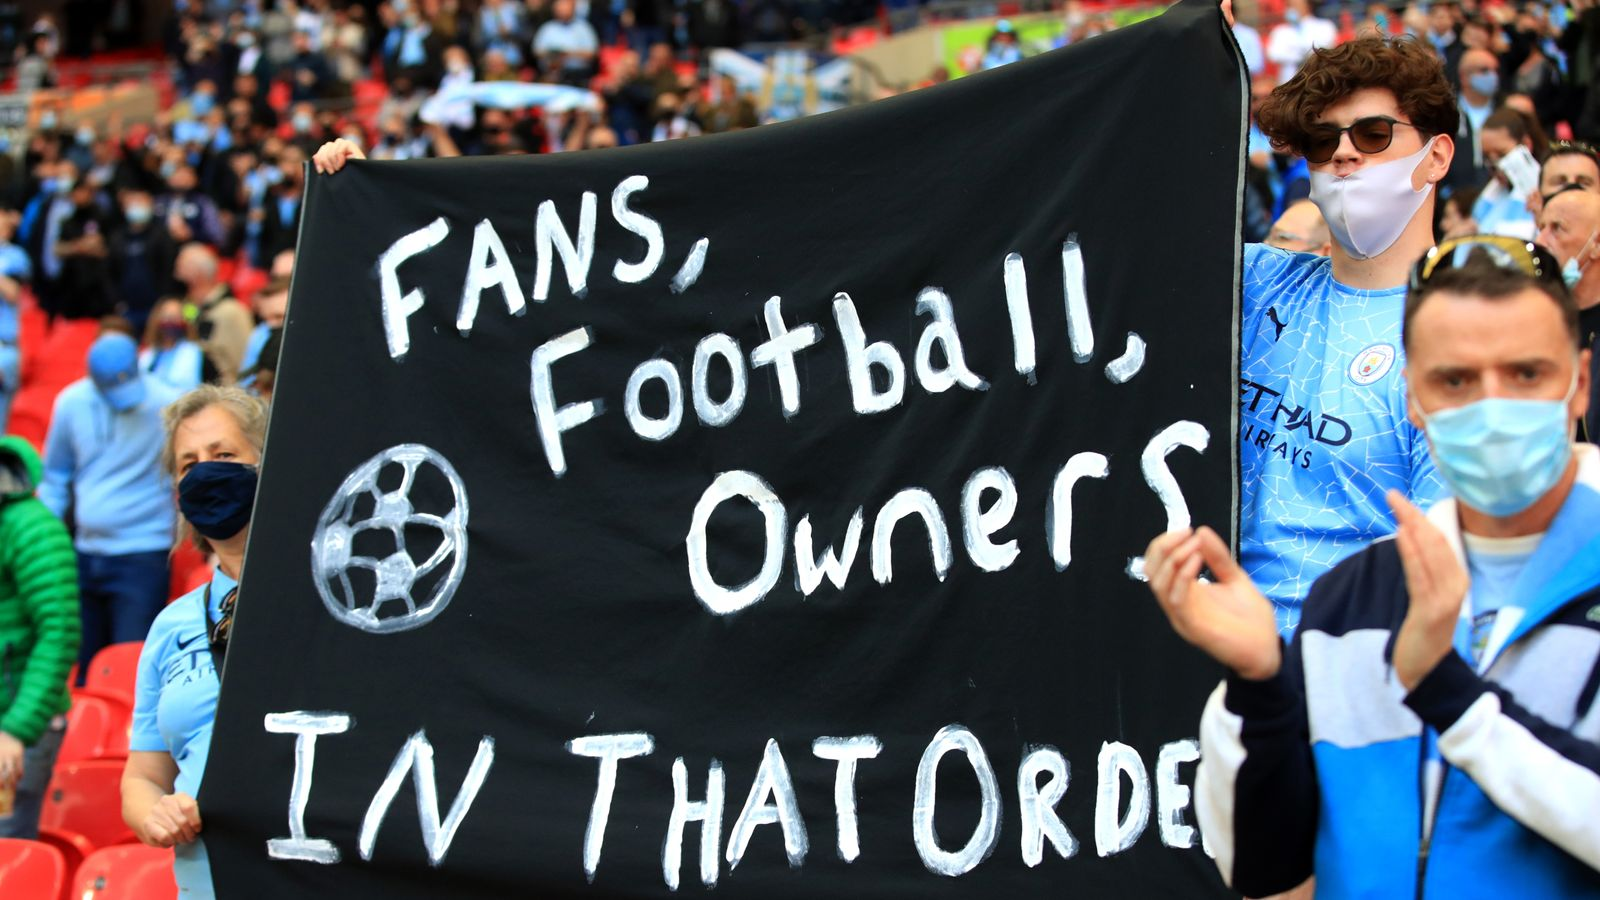 Football's fan-led review: MPs call for strong independent body to oversee clubs' finances and regulate game